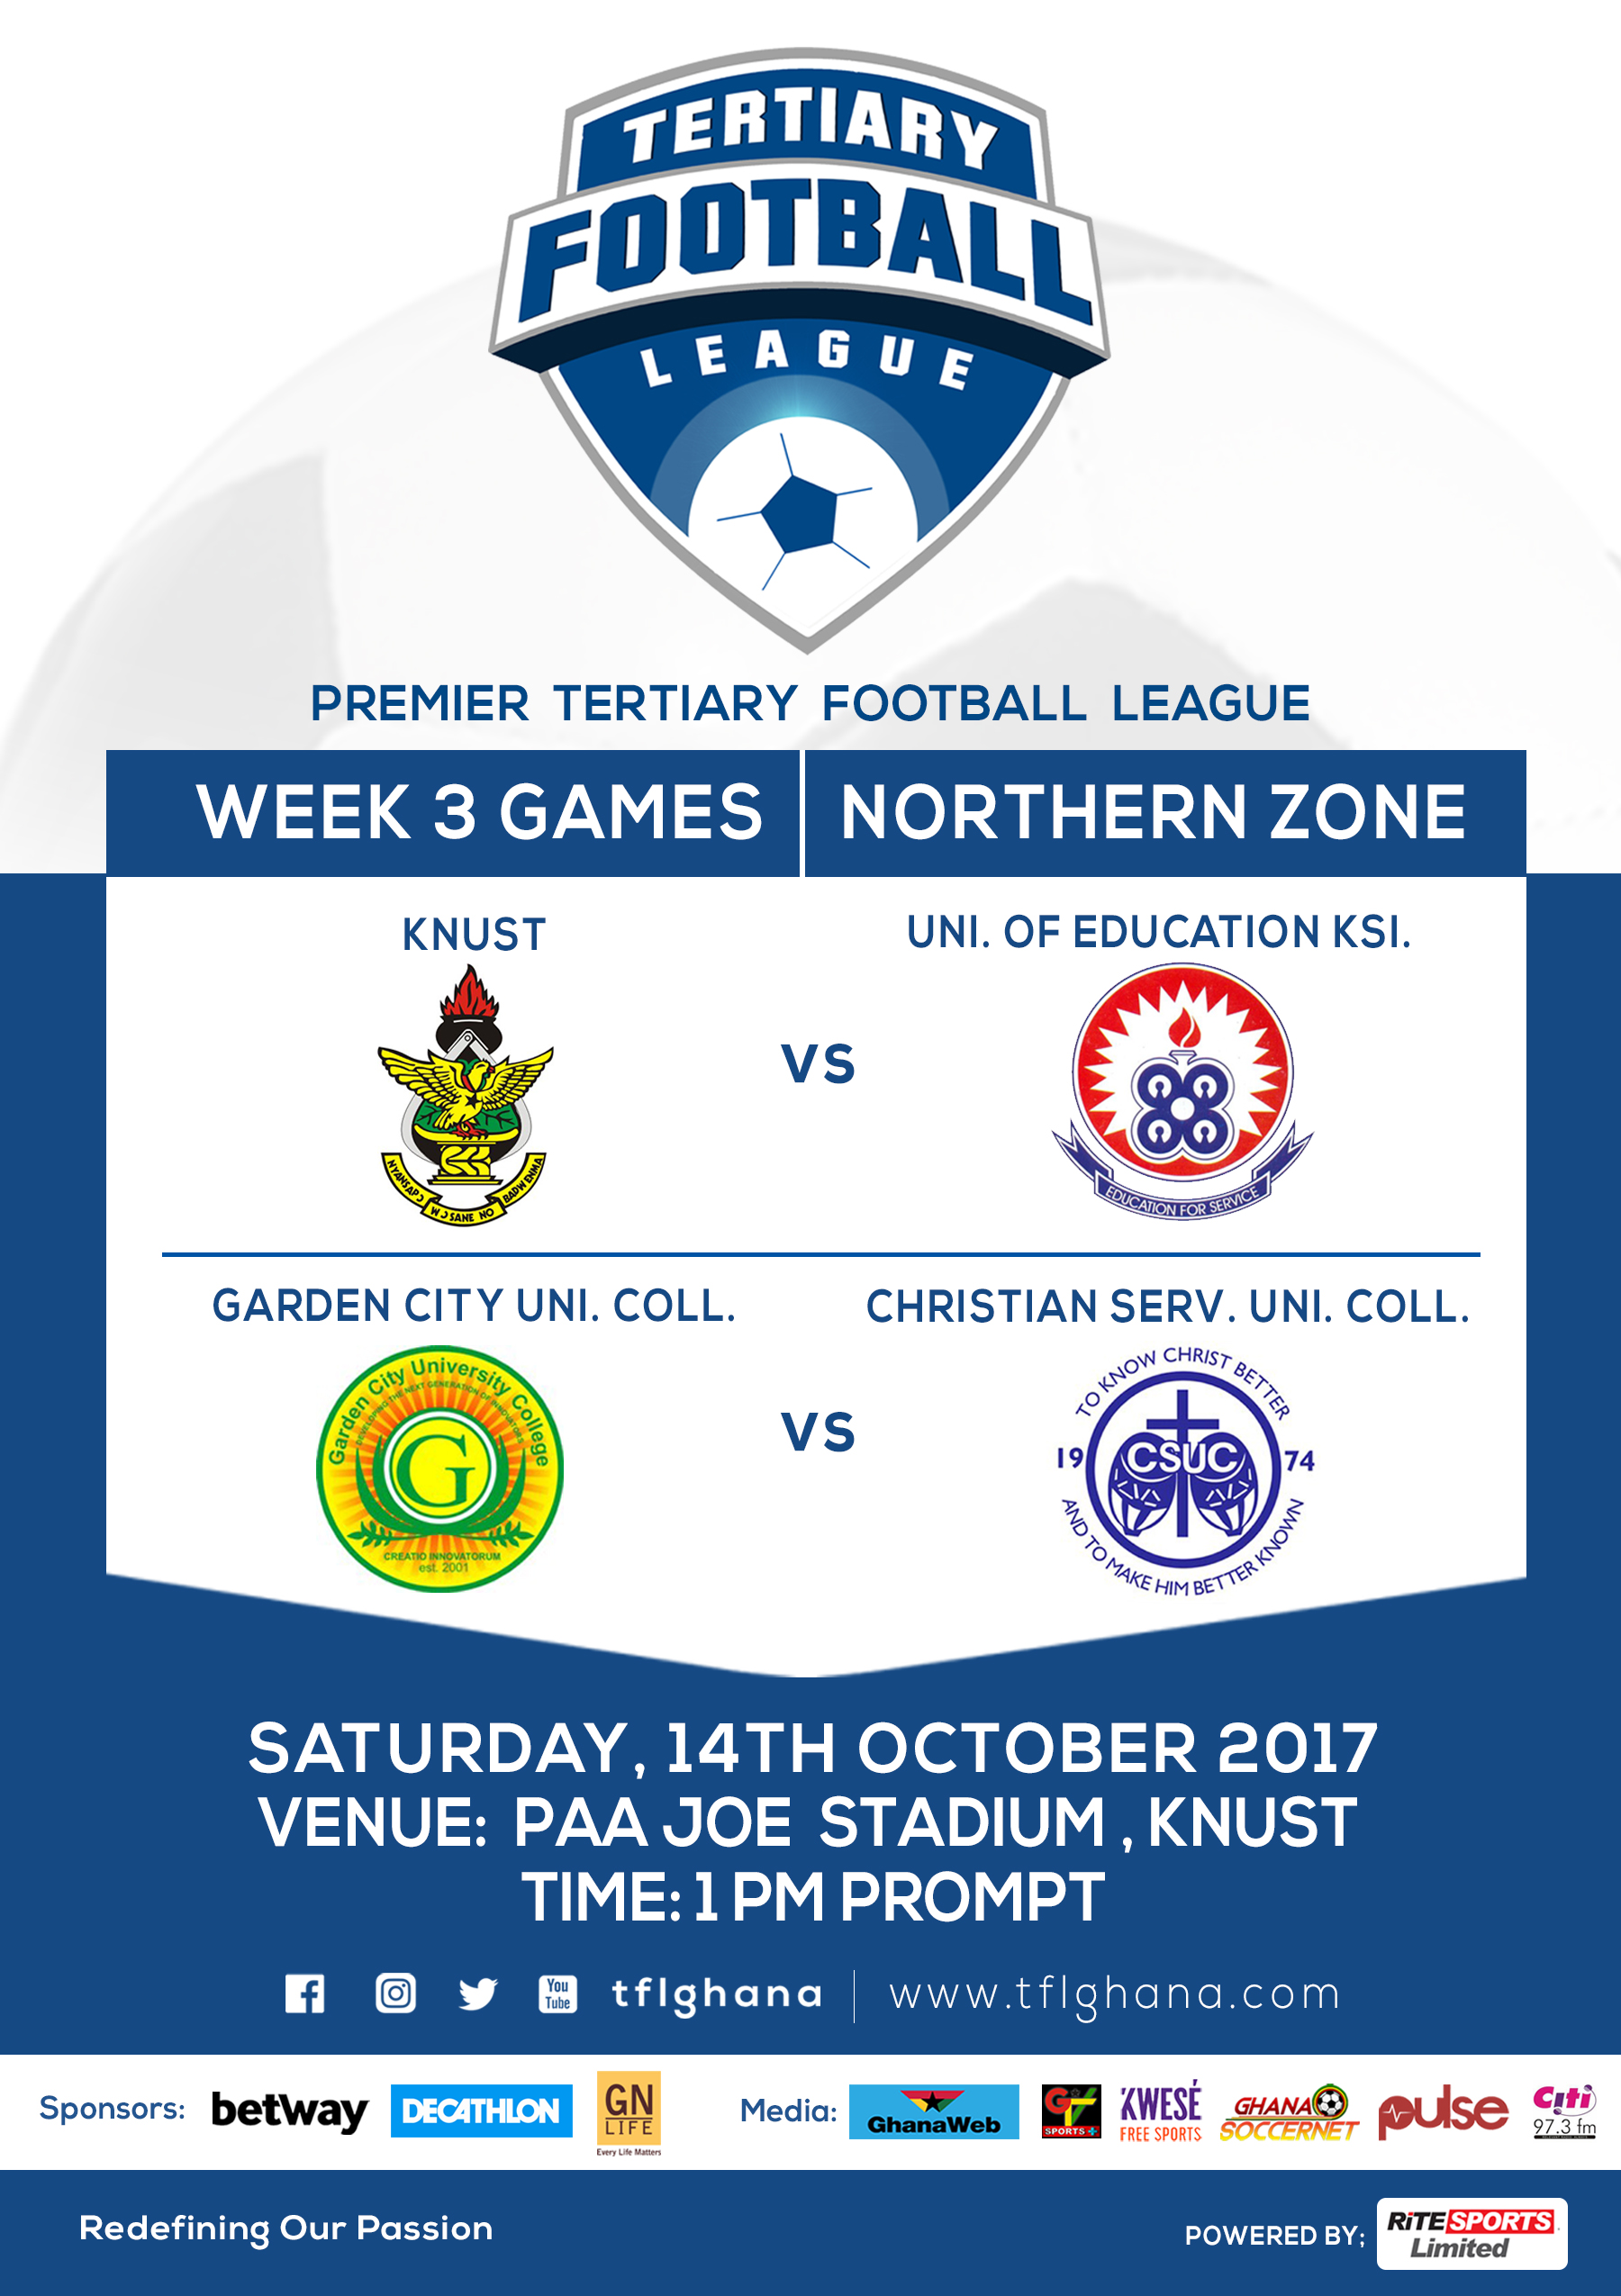 University League: KNUST battle UEK, Garden City face-off with Christian Services